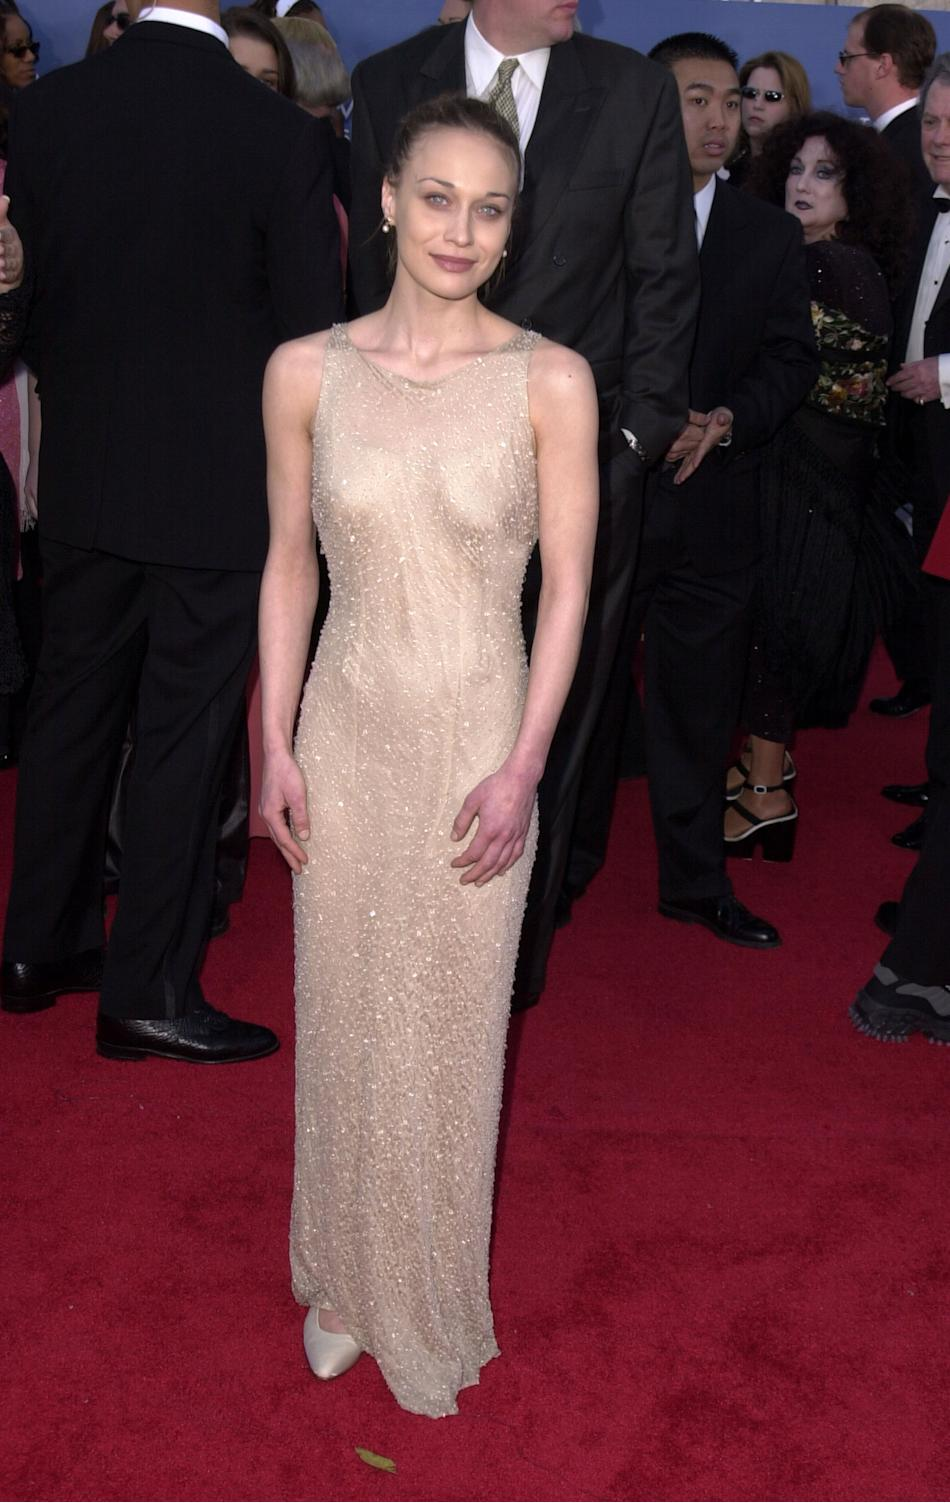 Are you digging this flimsy, minimalist, washed-out in-a-good-way semi-sheer gown as much as I am? Fiona was a waif-y beauty at the 2001 GRAMMYs in a beaded gown with dewy, natural makeup, combed-back